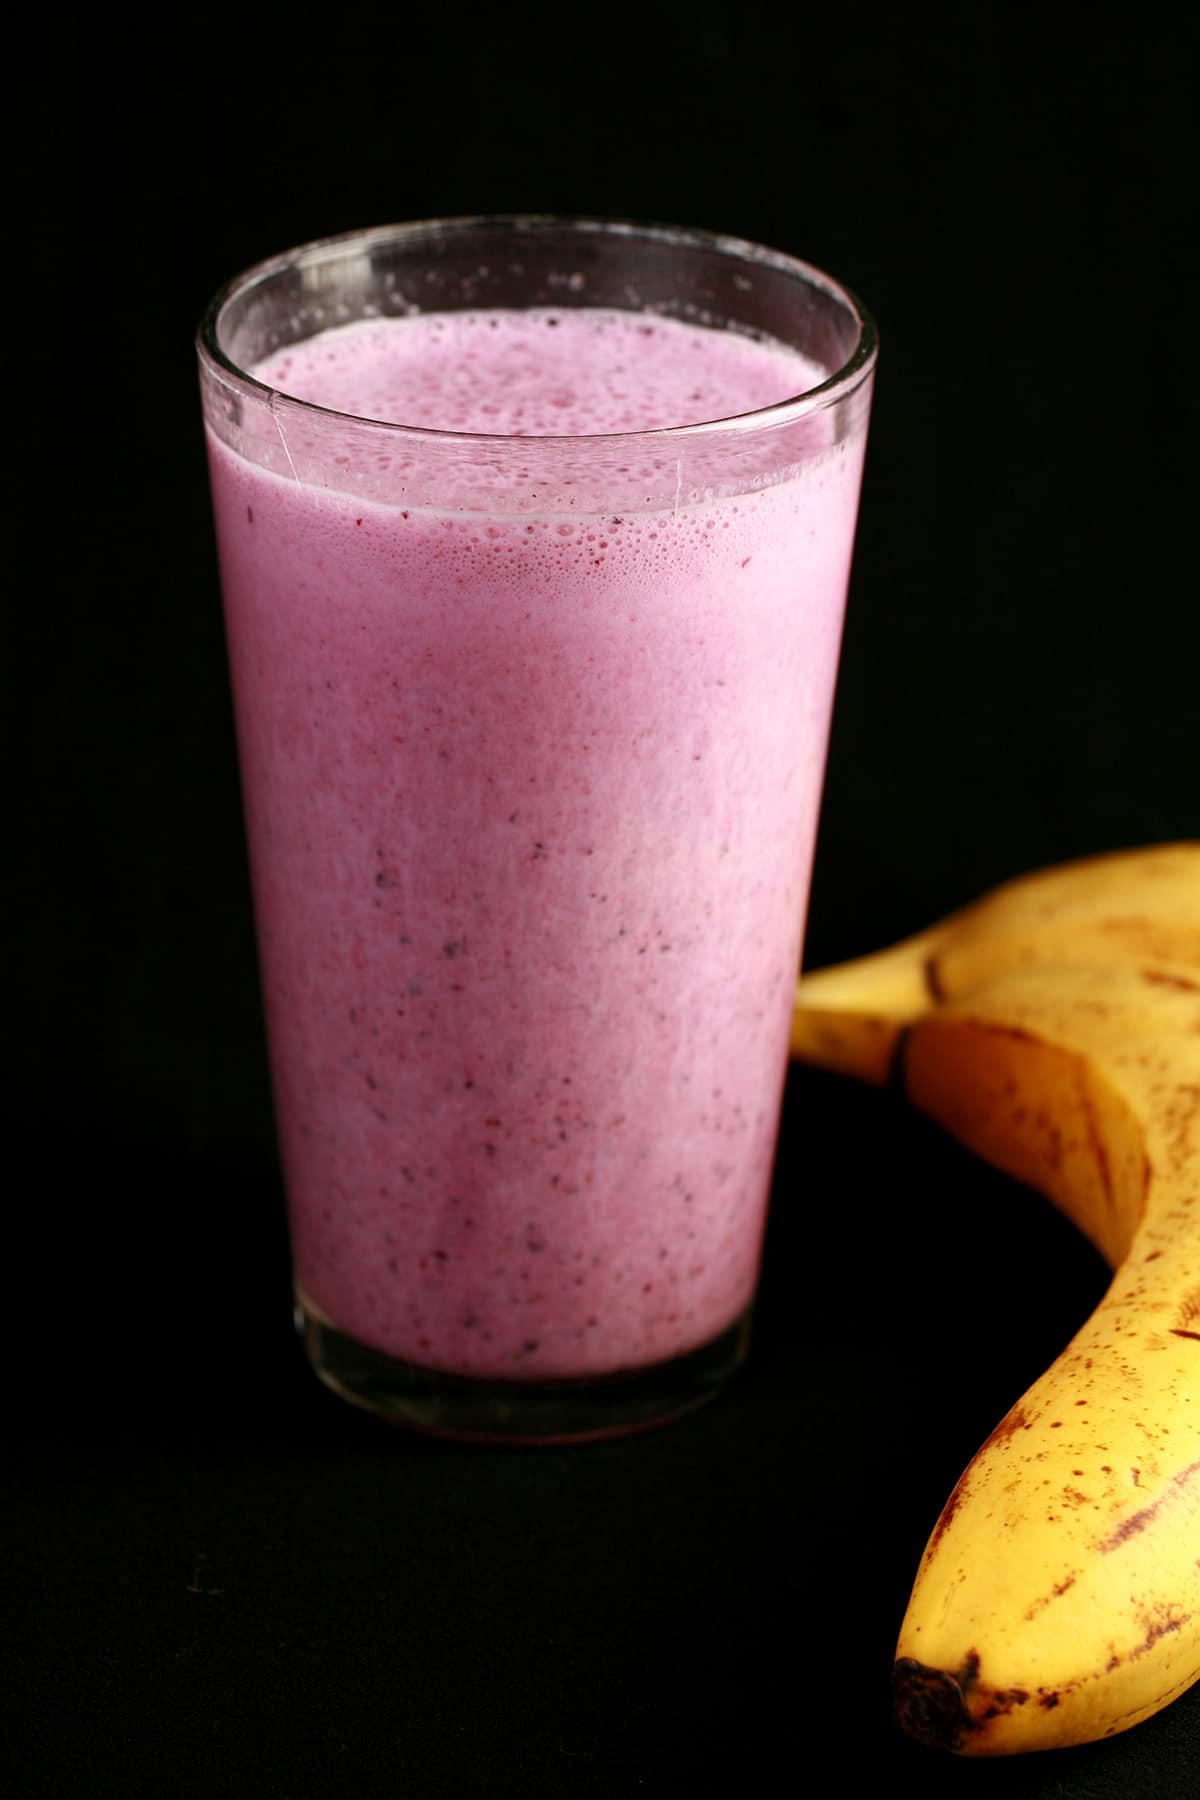 A pink hotel room smoothie in a tall glass, next to 2 bananas.